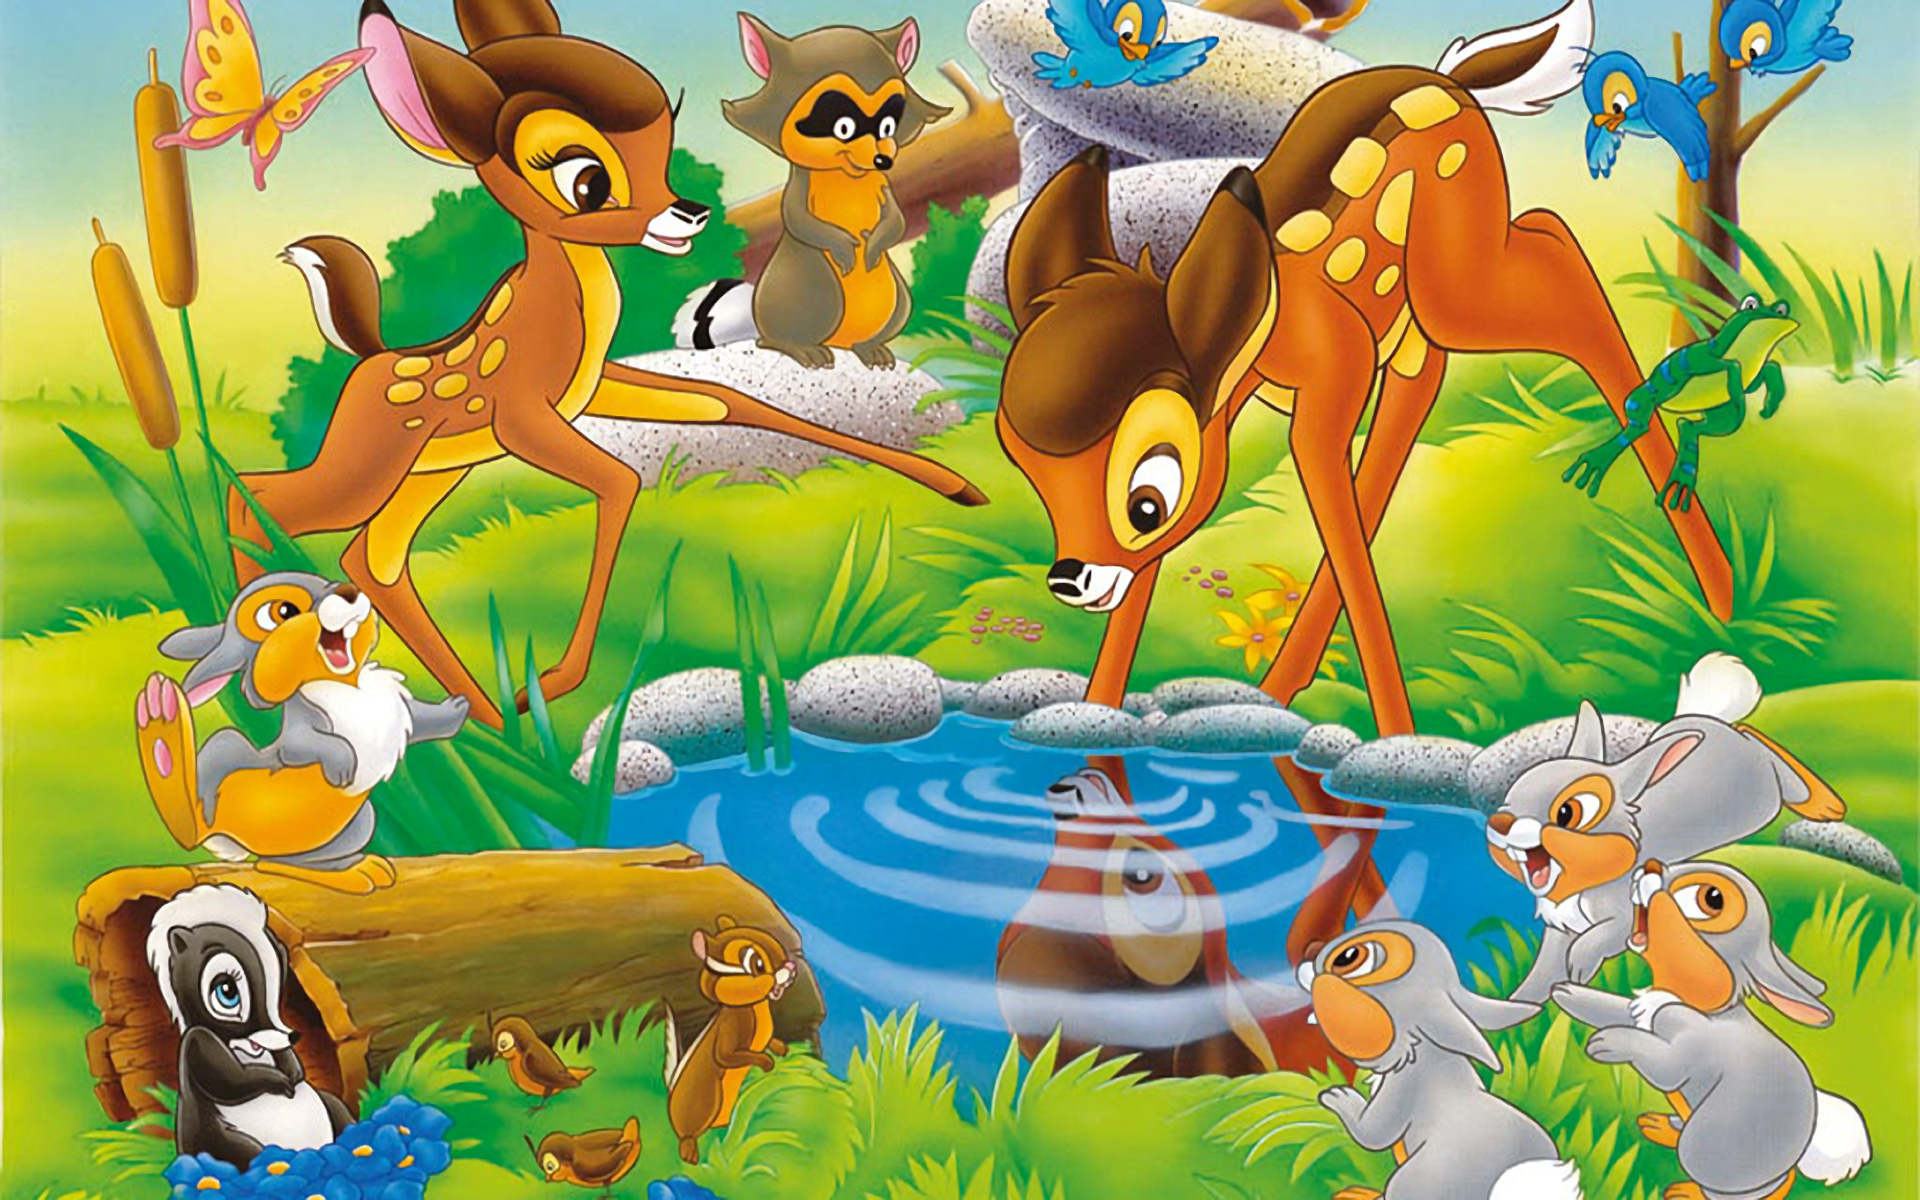 bambi full movie download in english